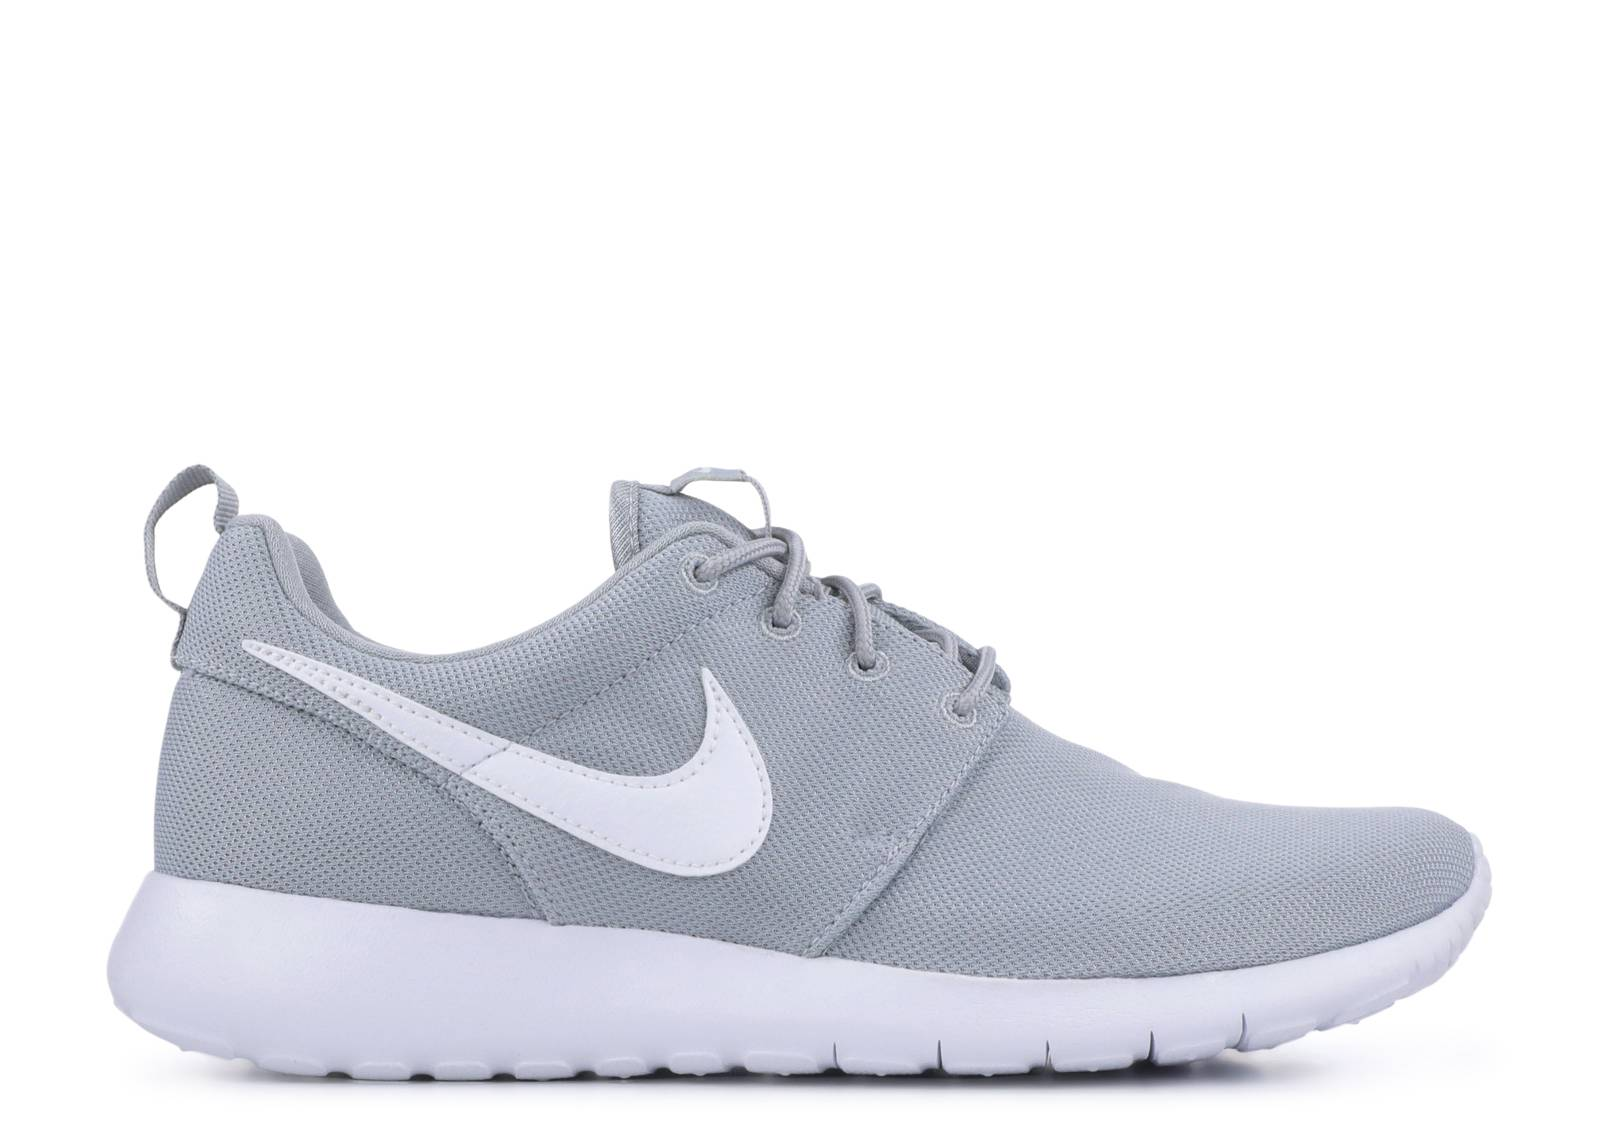 704927 002 Nike Roshe One Flyknit For Women Shoes Wolf Grey